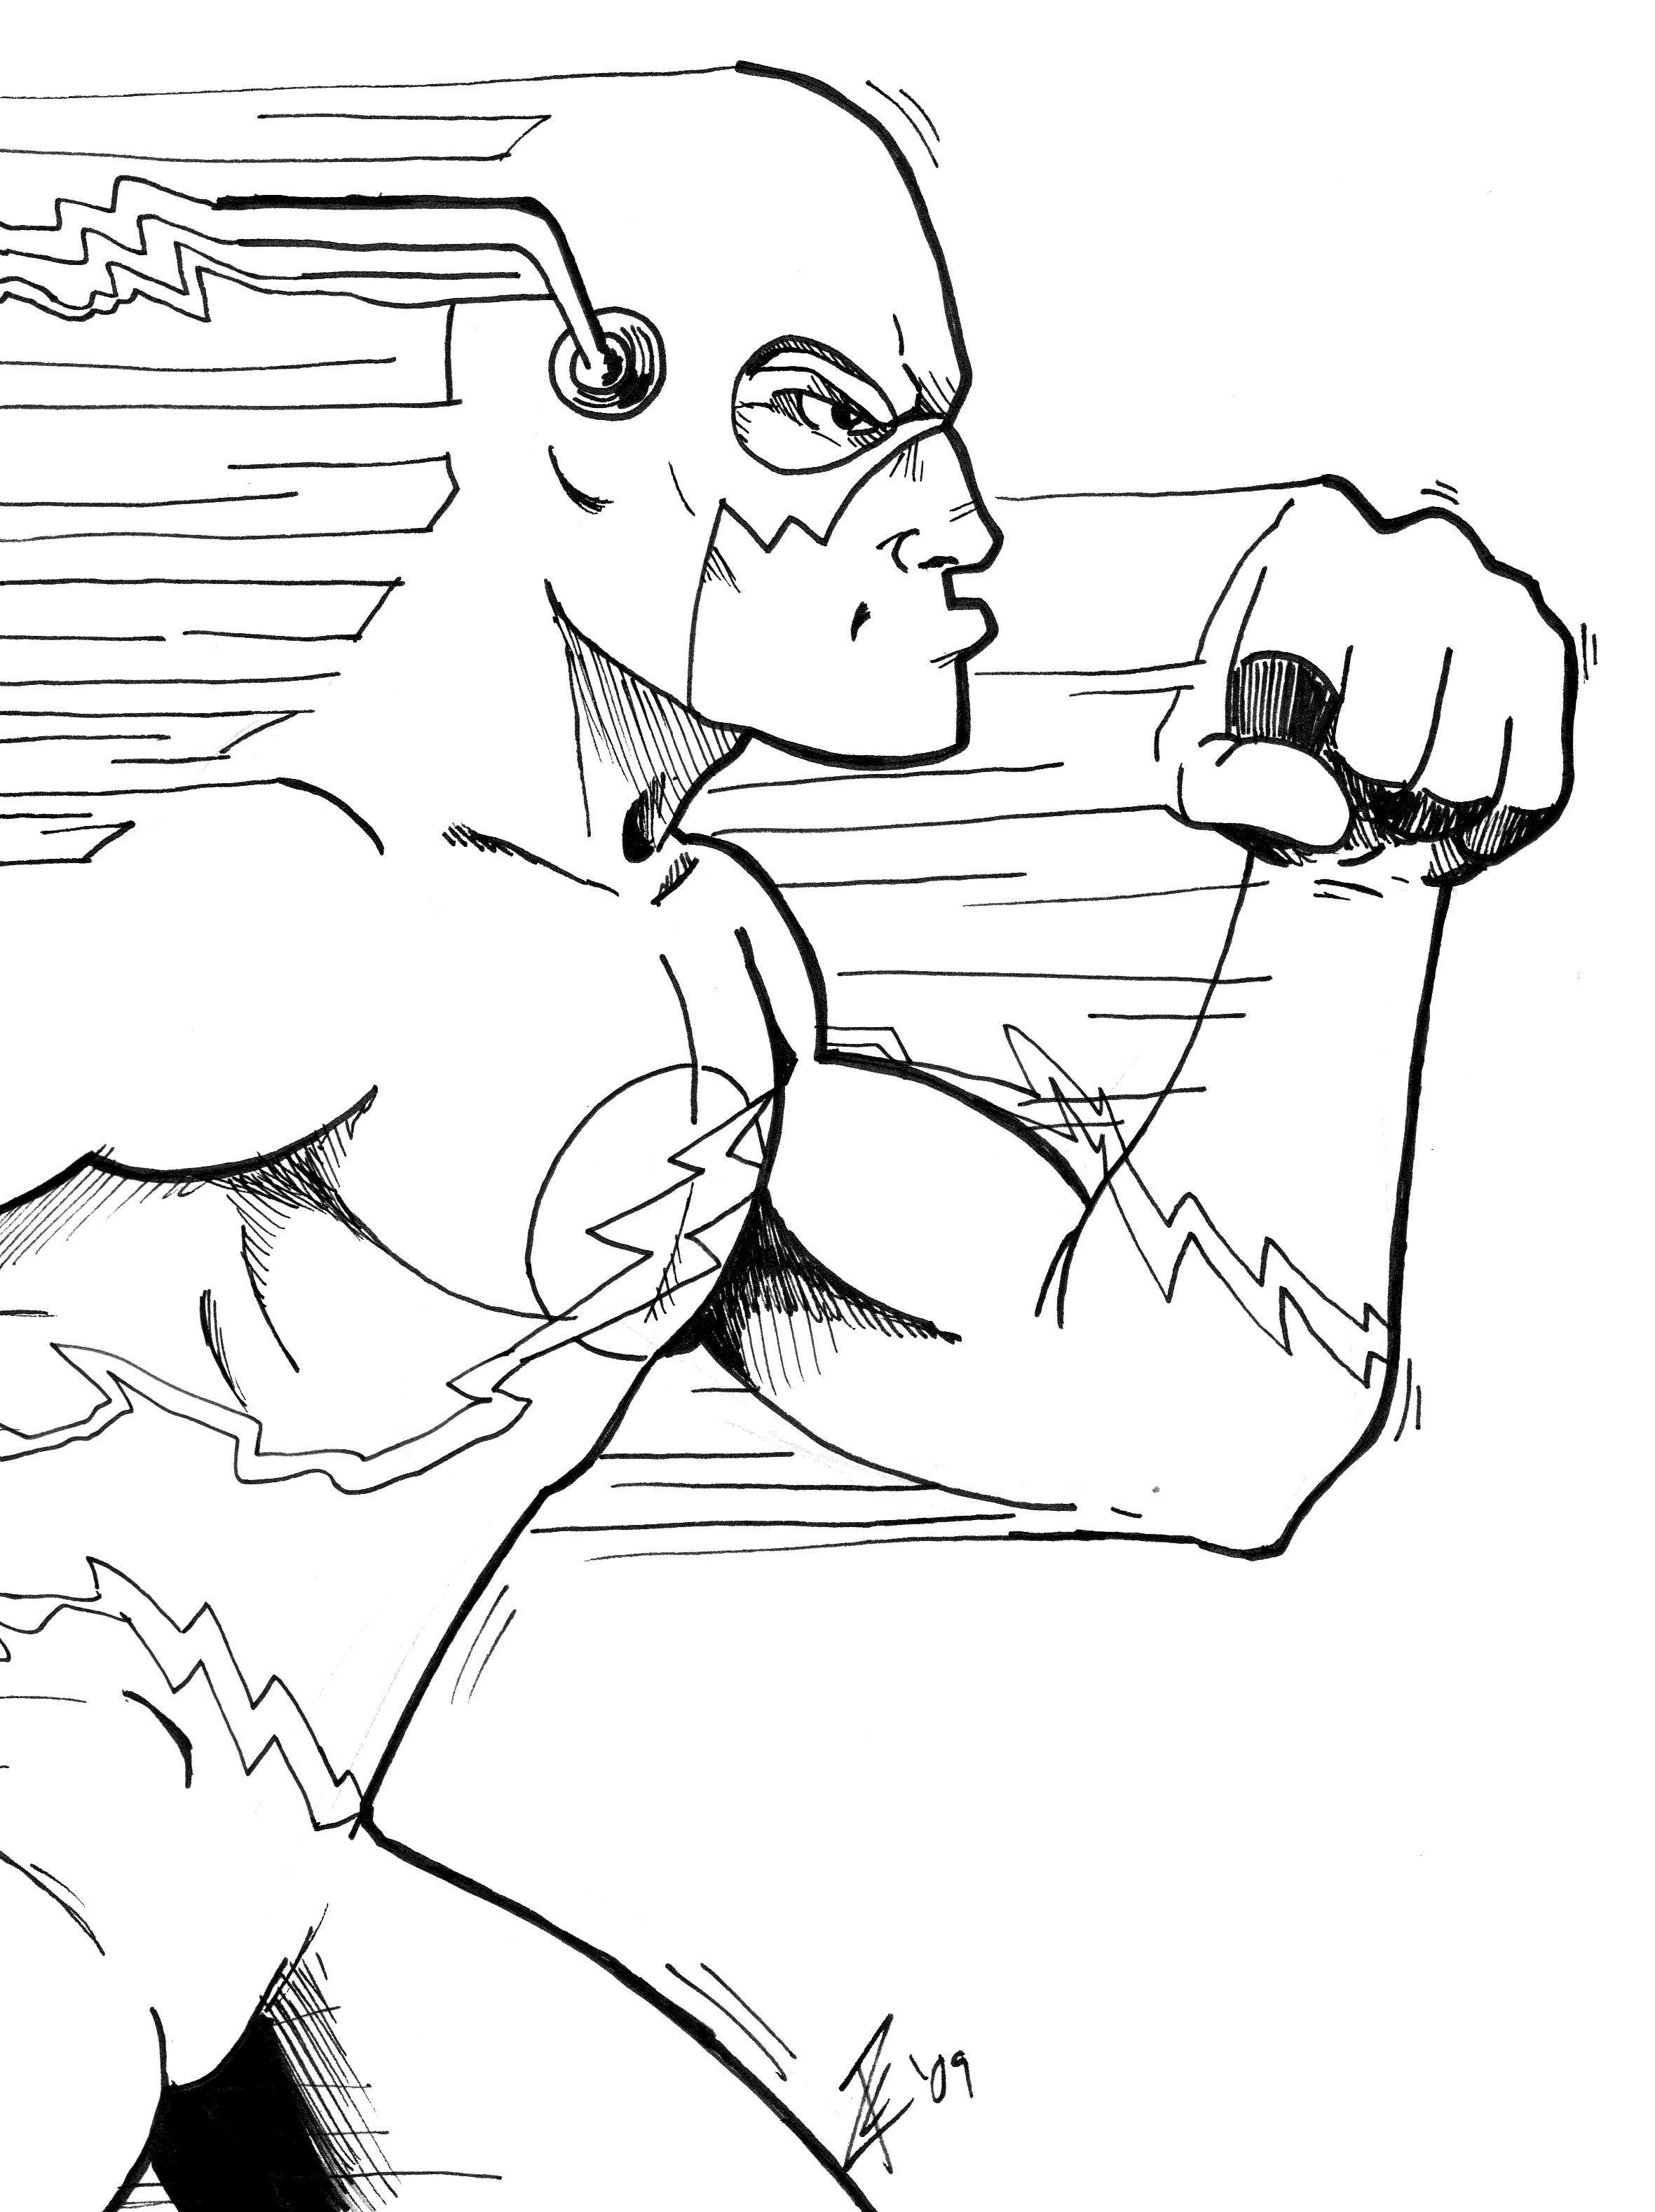 dc comics coloring book pages 25 dc comics coloring book variant covers revealed ign pages book dc comics coloring